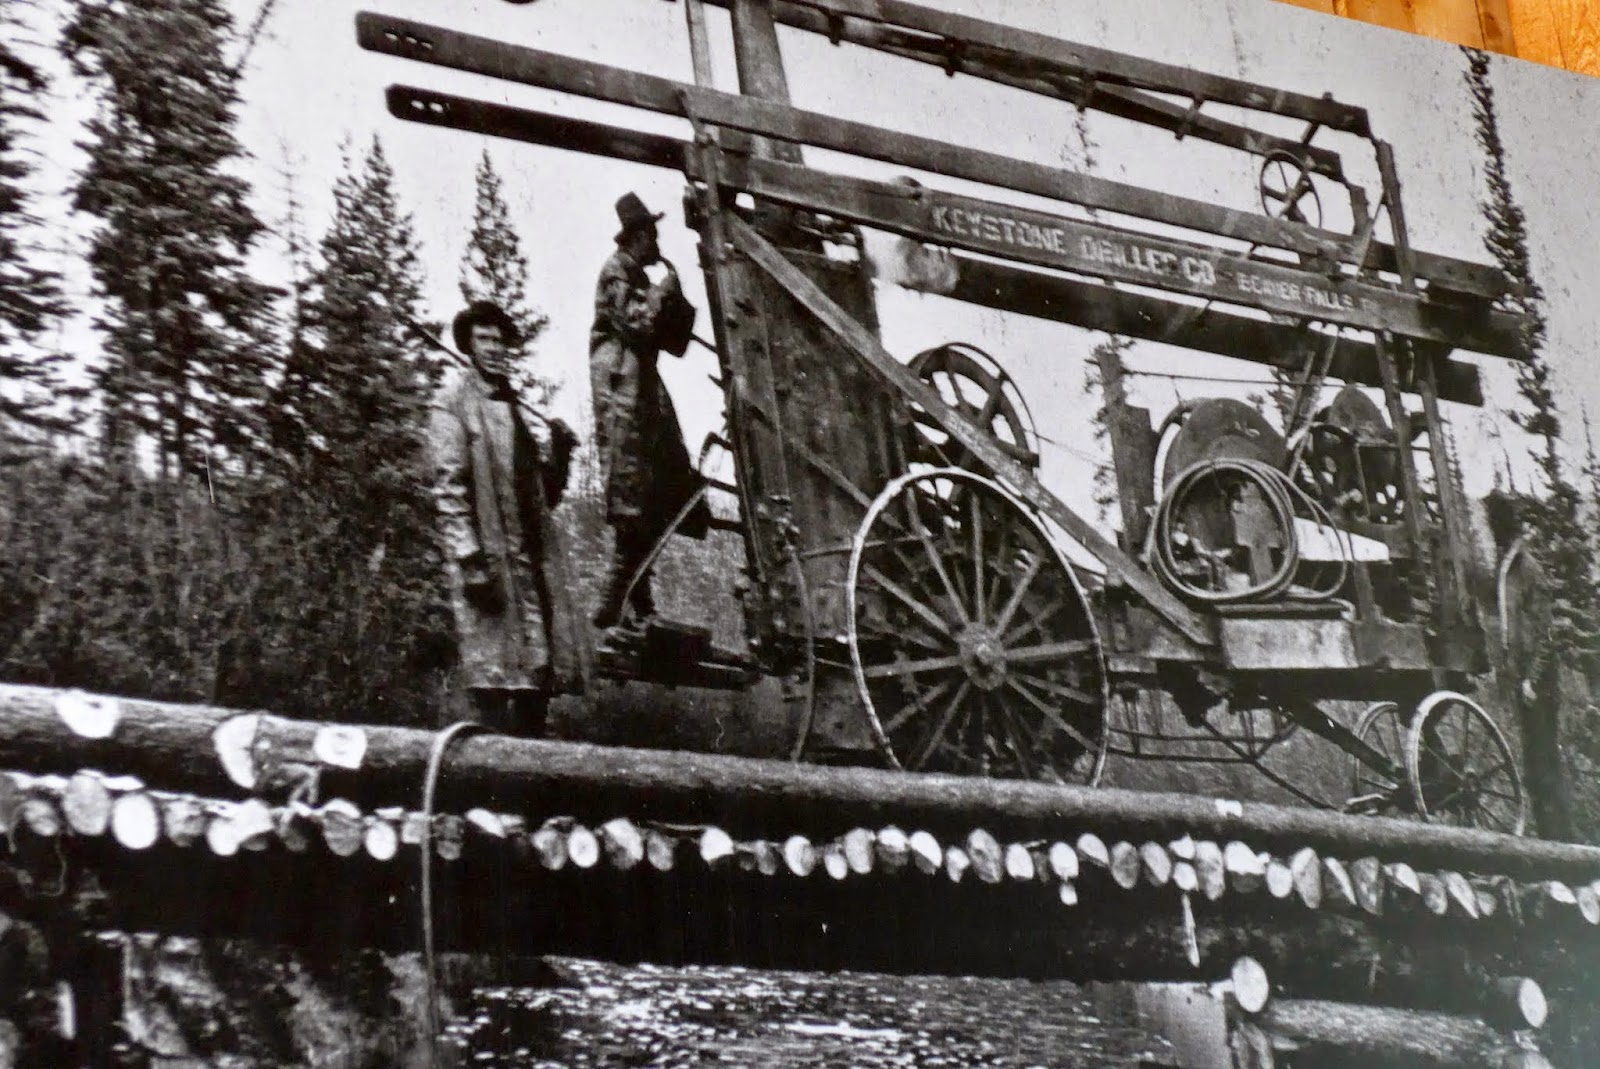 This contraption was walked on it's own power from Dawson City to Keno